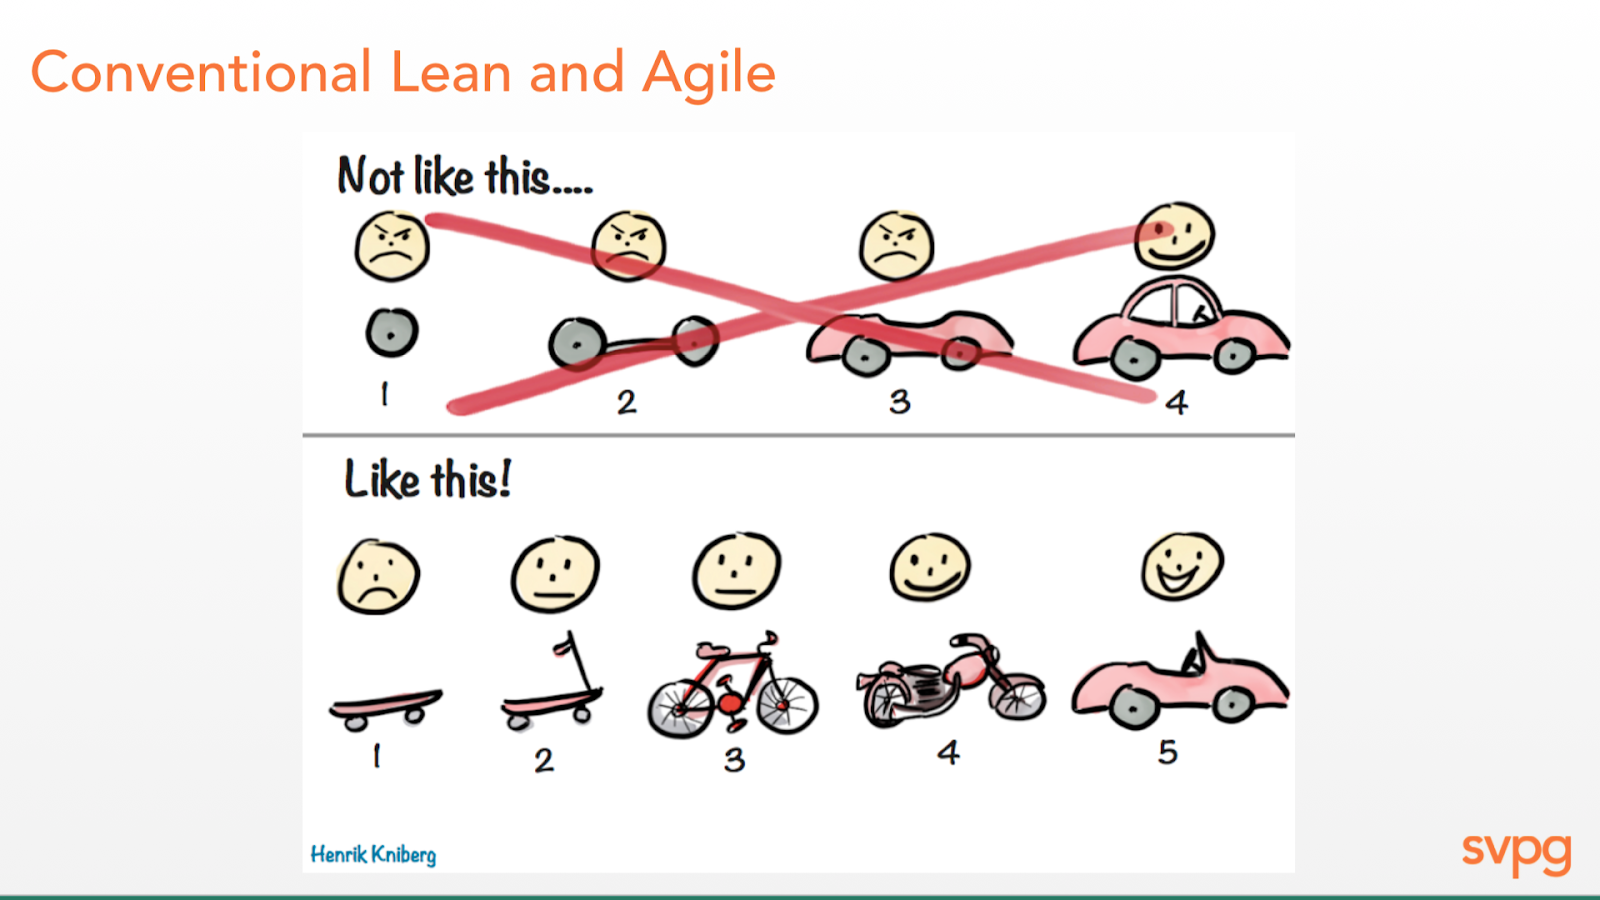 Conventional Lean and Agile